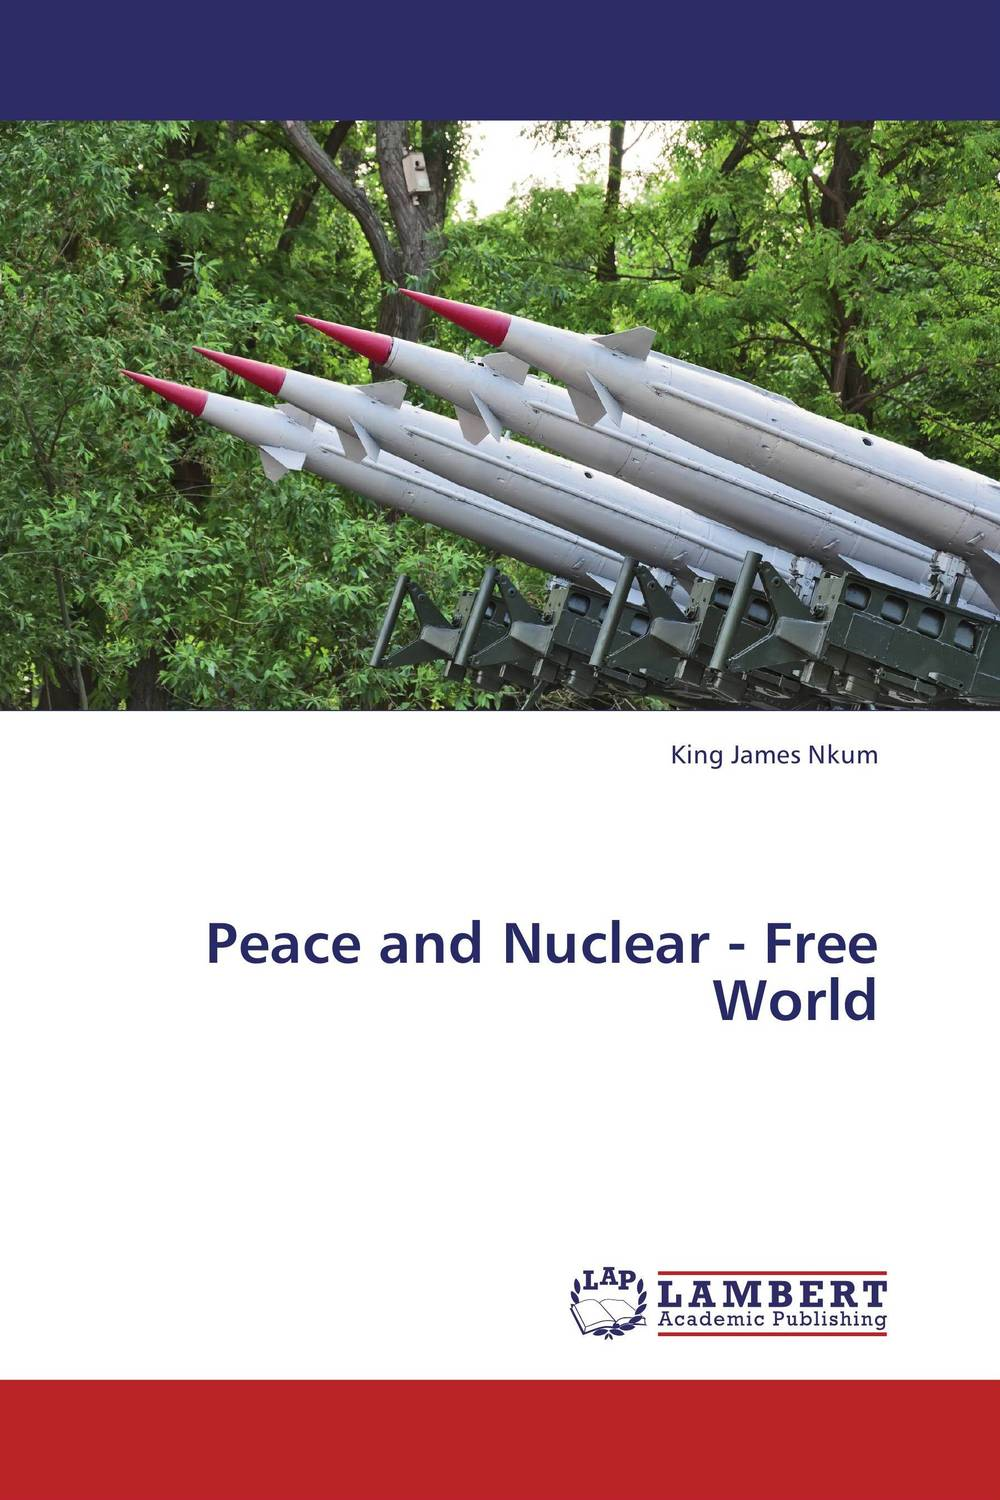 Peace and Nuclear - Free World